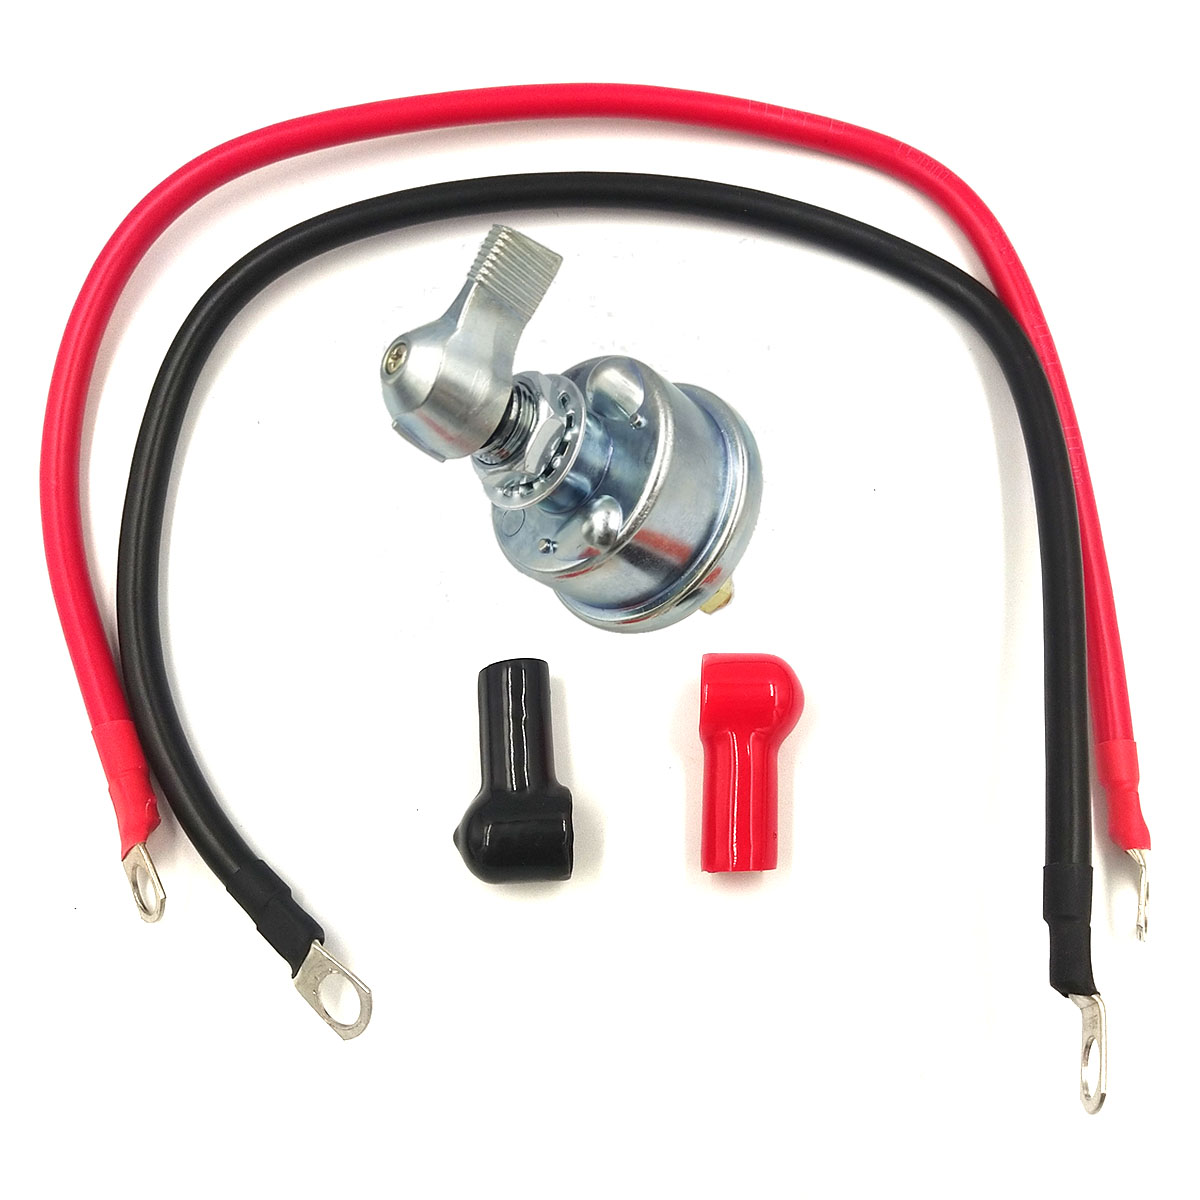 125 Amps Battery Power-off Switch For Cars Rvs Trailers Ships Trucks Power-off switch+terminal+leather cover+copper wire